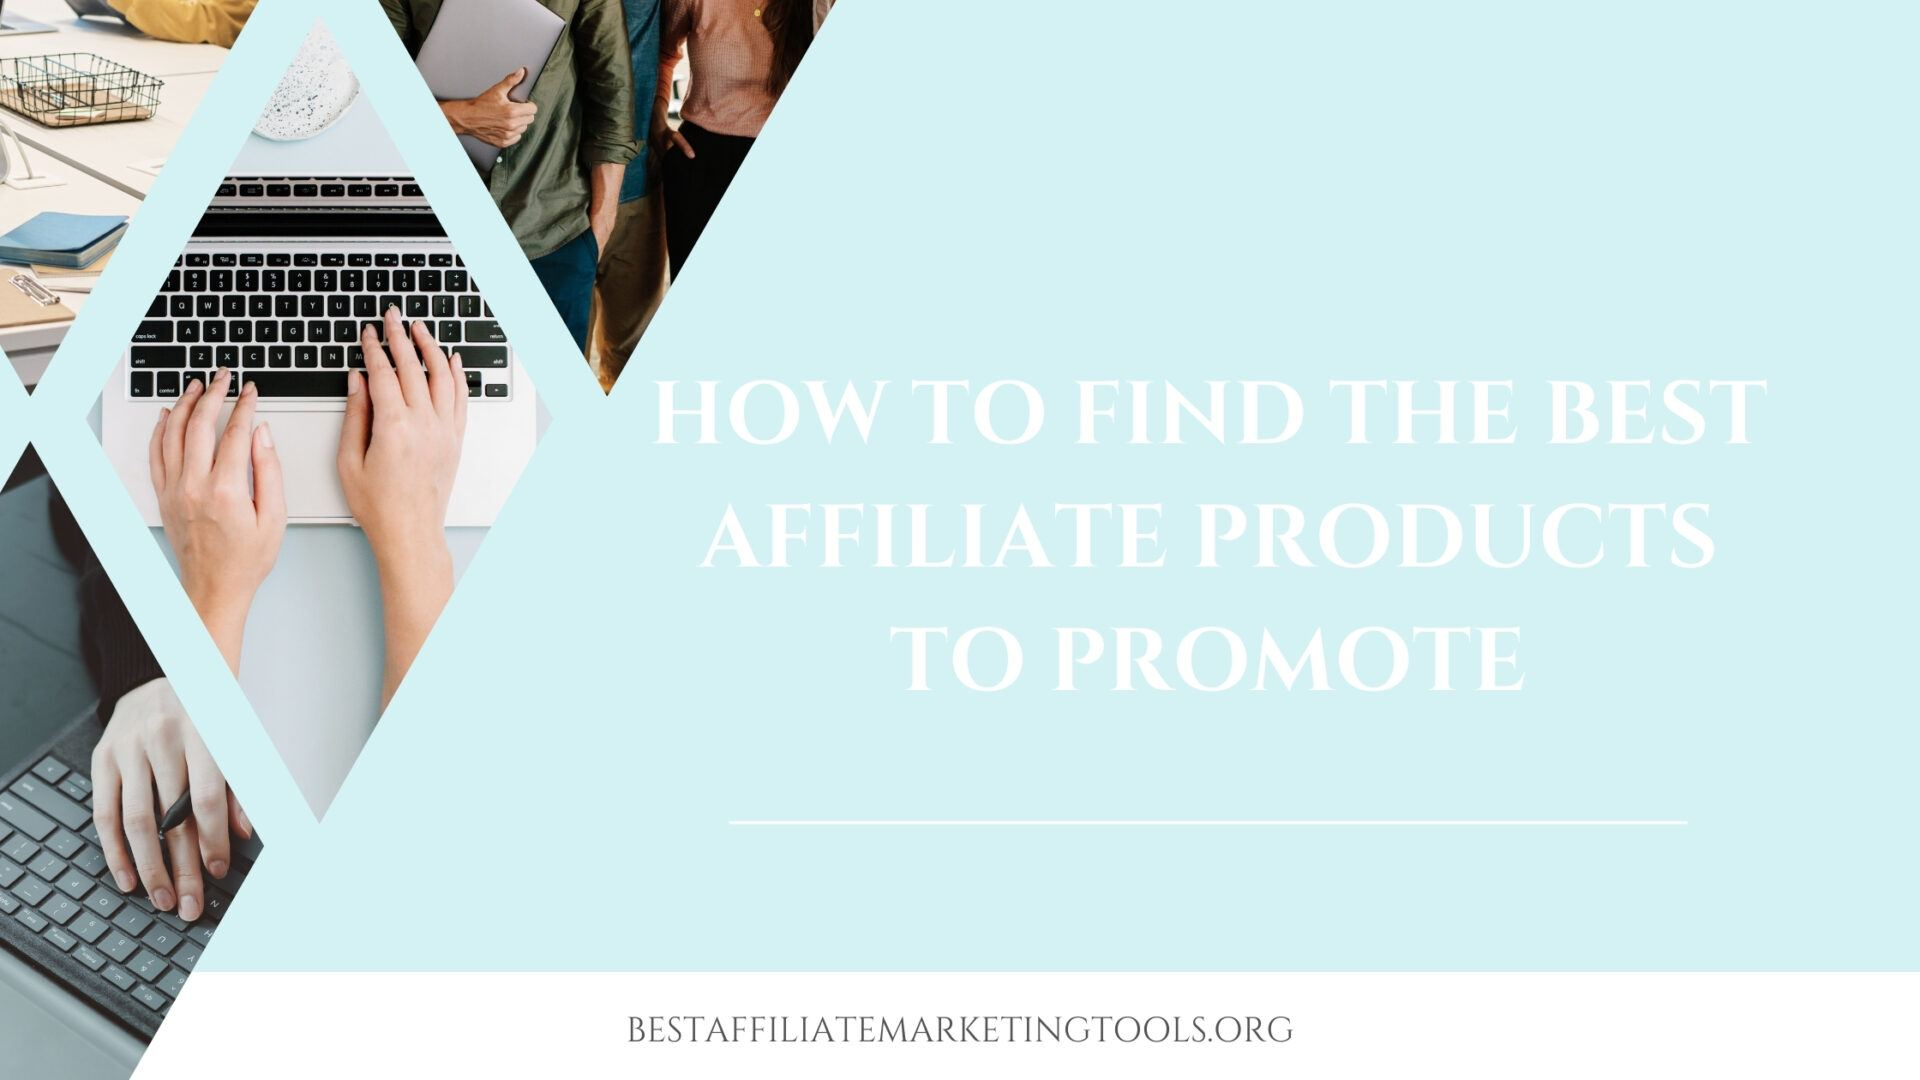 How to Find The Best Affiliate Products to Promote